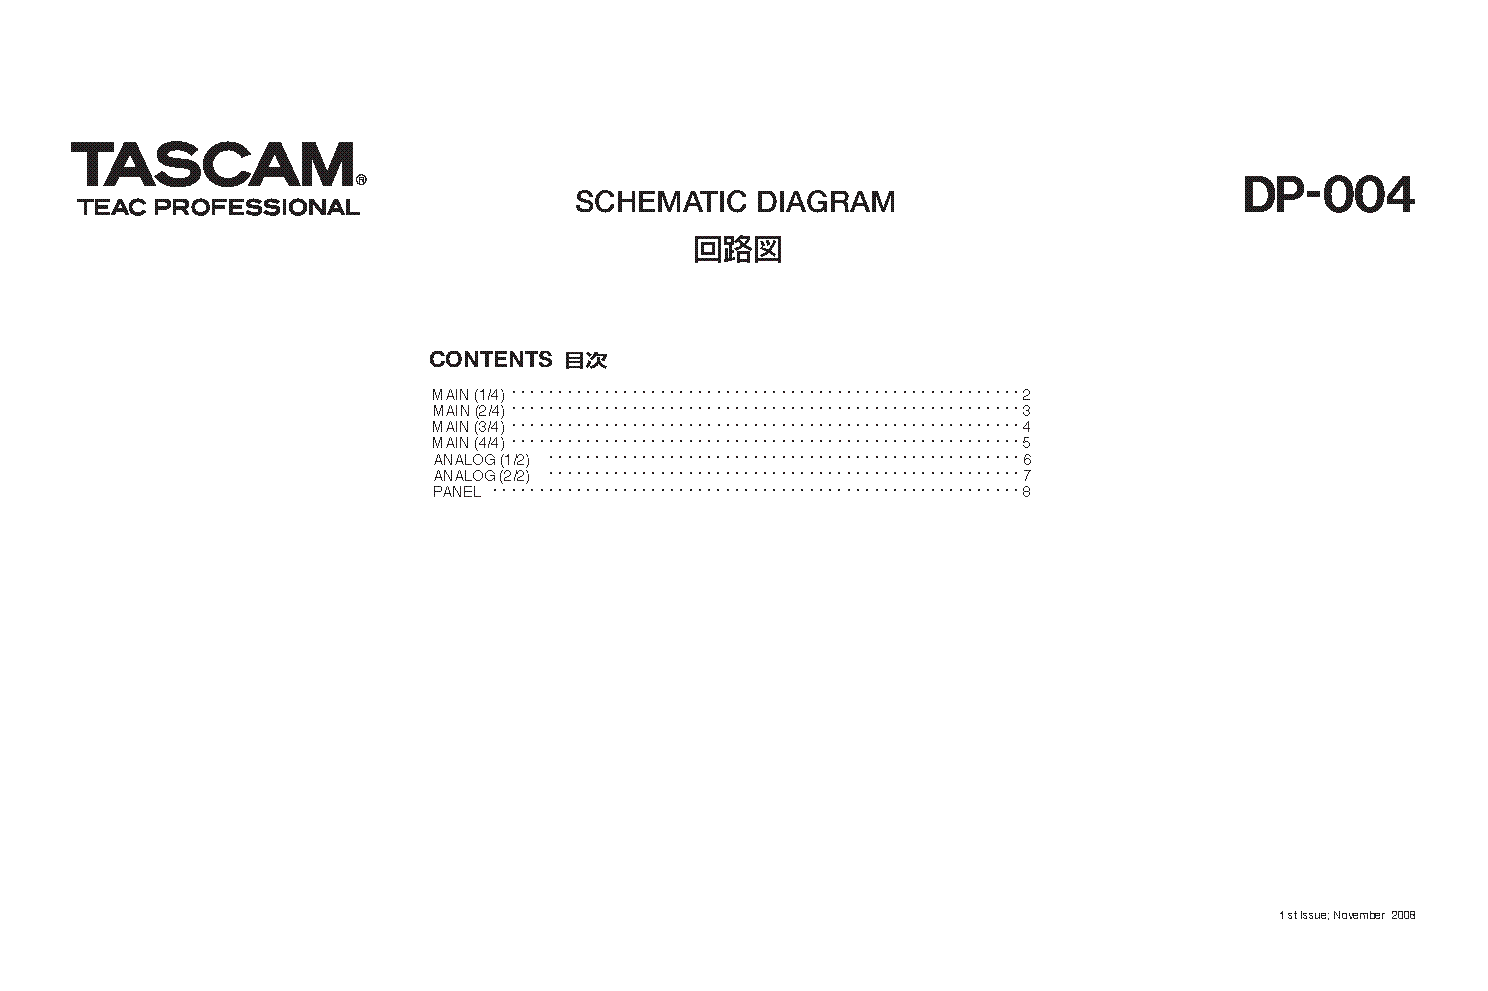 Tascam cd rw2000 service manual tascam array tascam dp 004 sch service manual download schematics eeprom rh elektrotanya com fandeluxe Choice Image